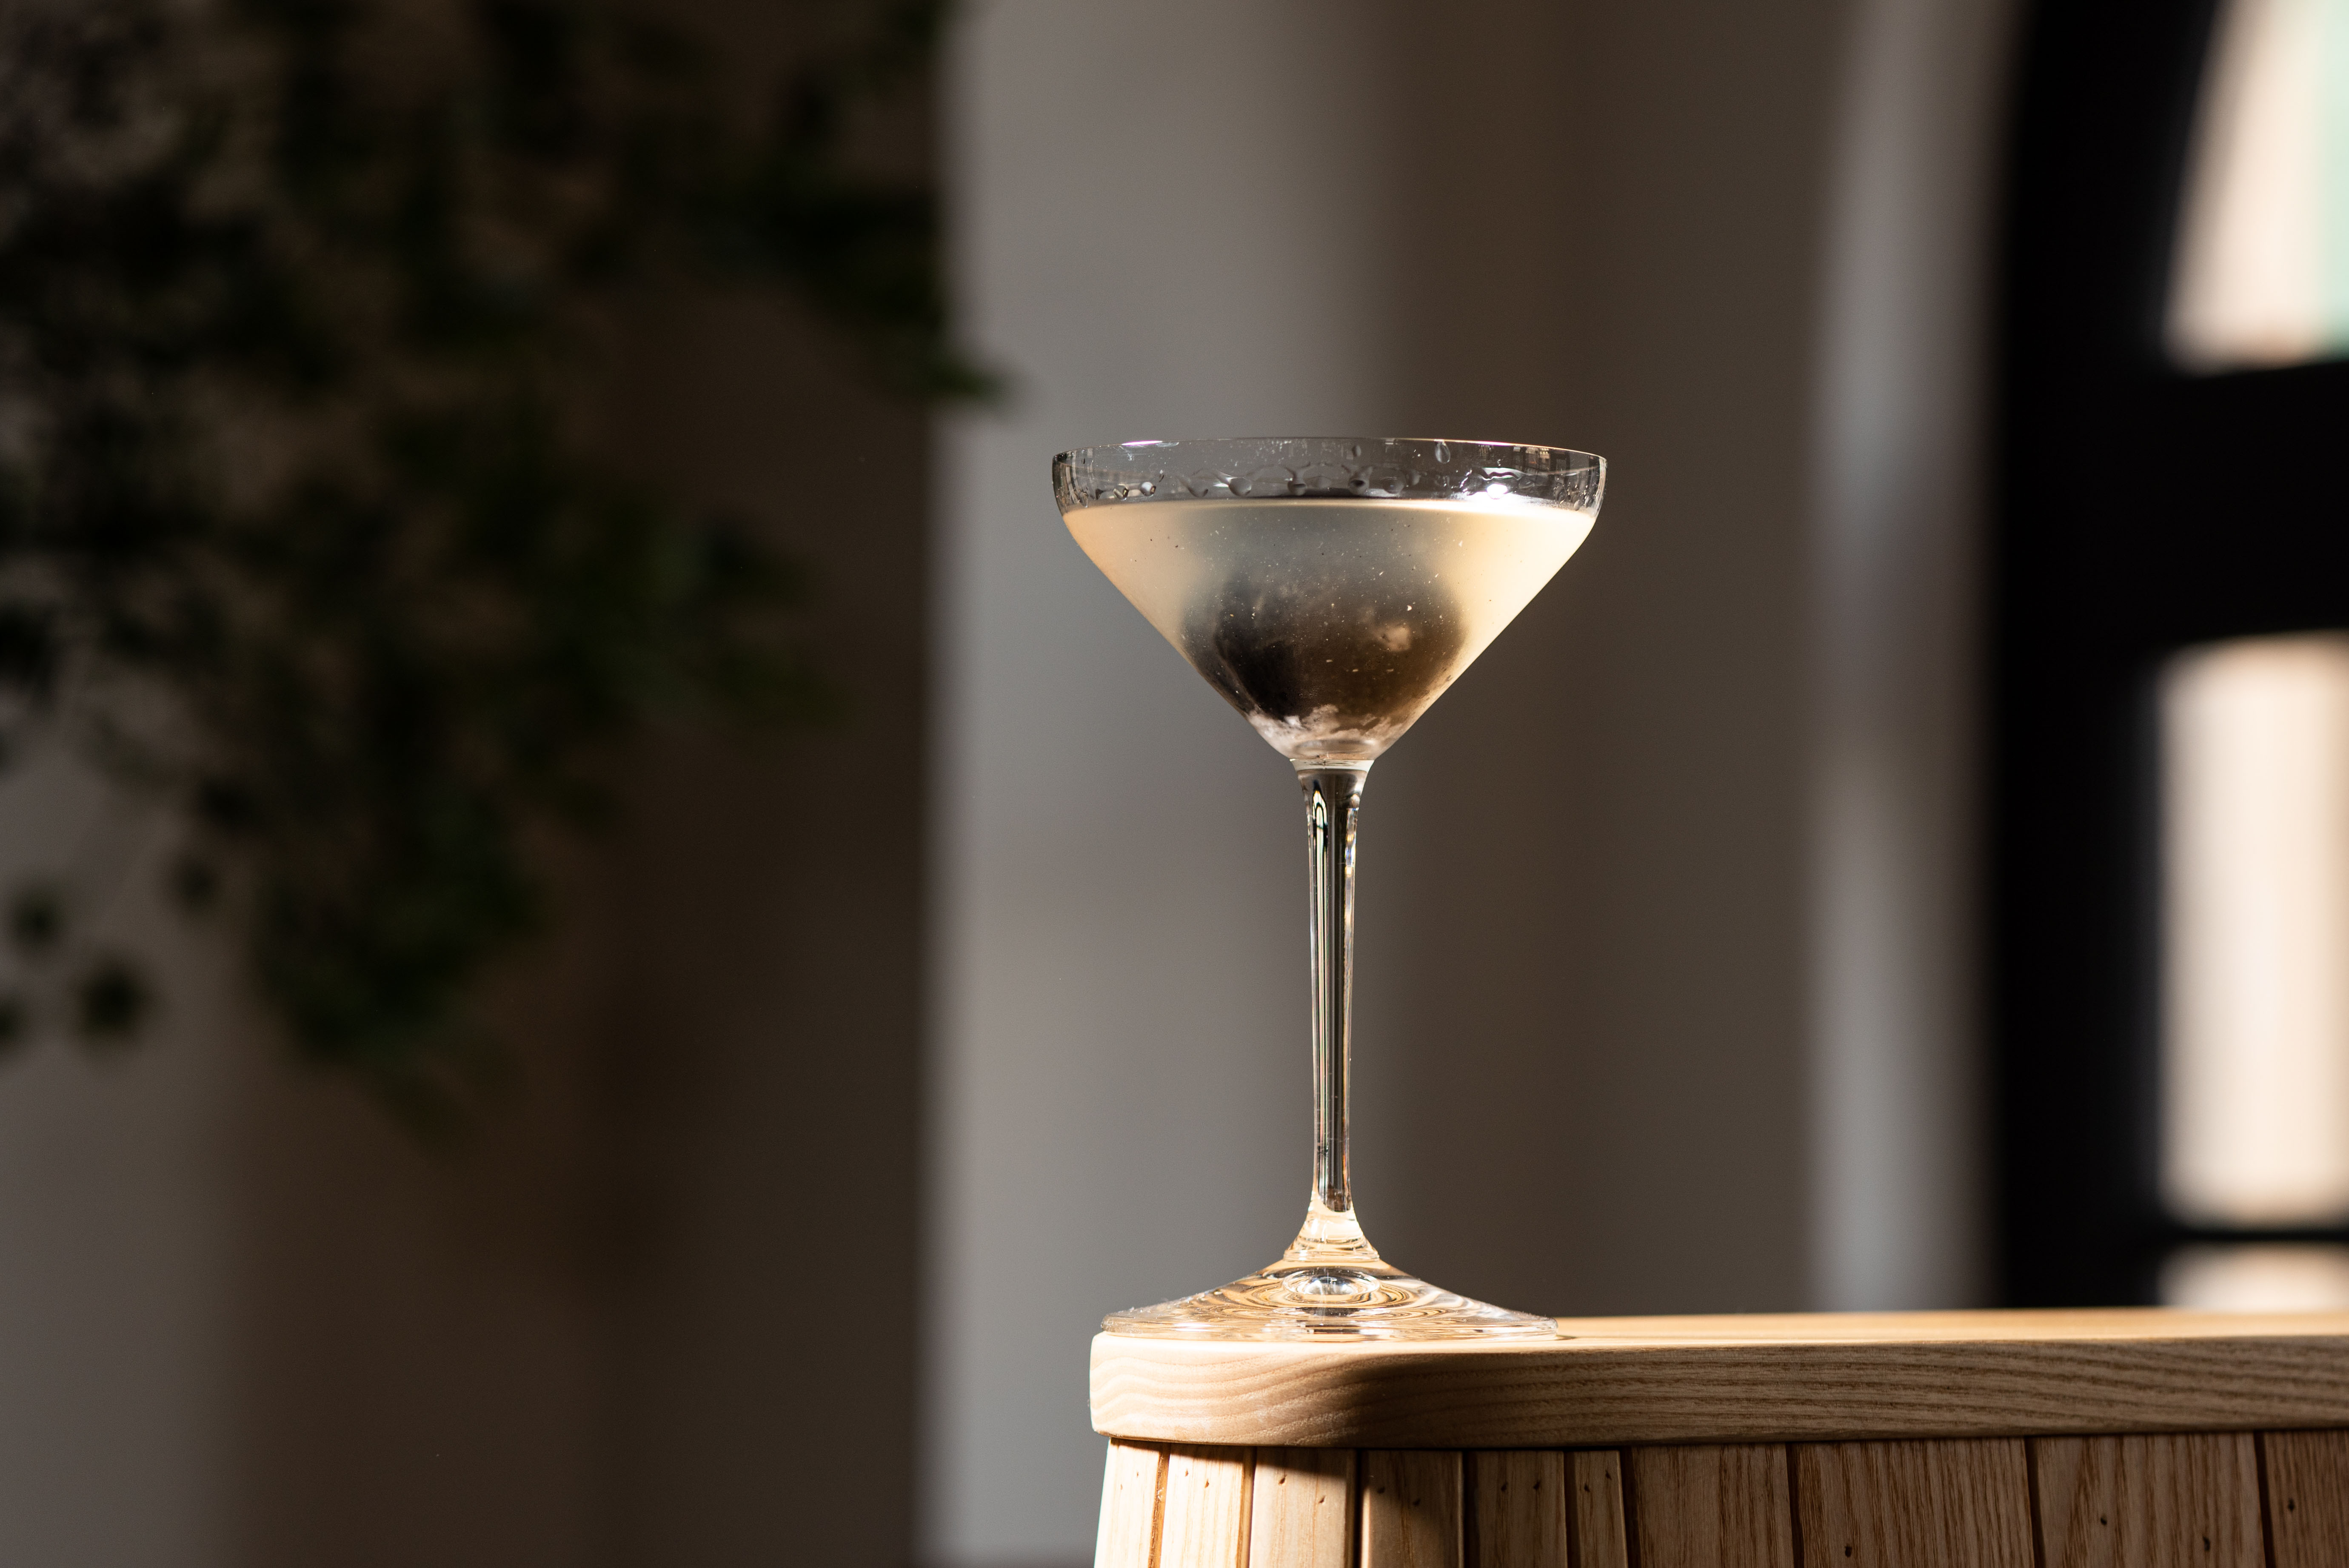 A martini with dark ice at the edge of a table.